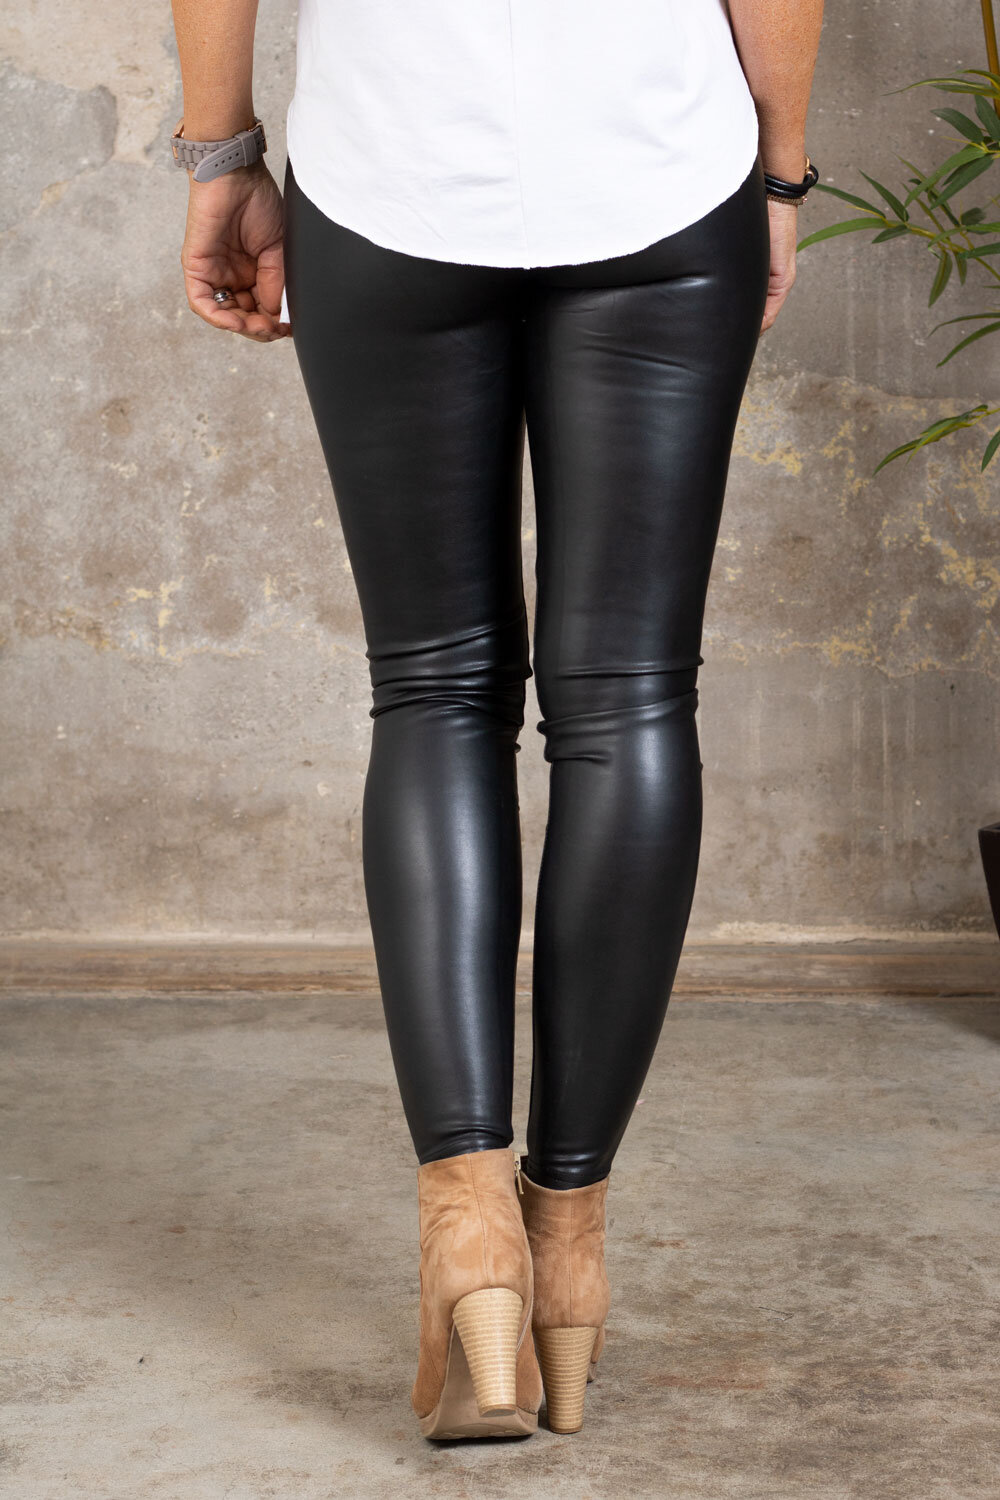 Fejkskinn leggings - VS18001 - Svart